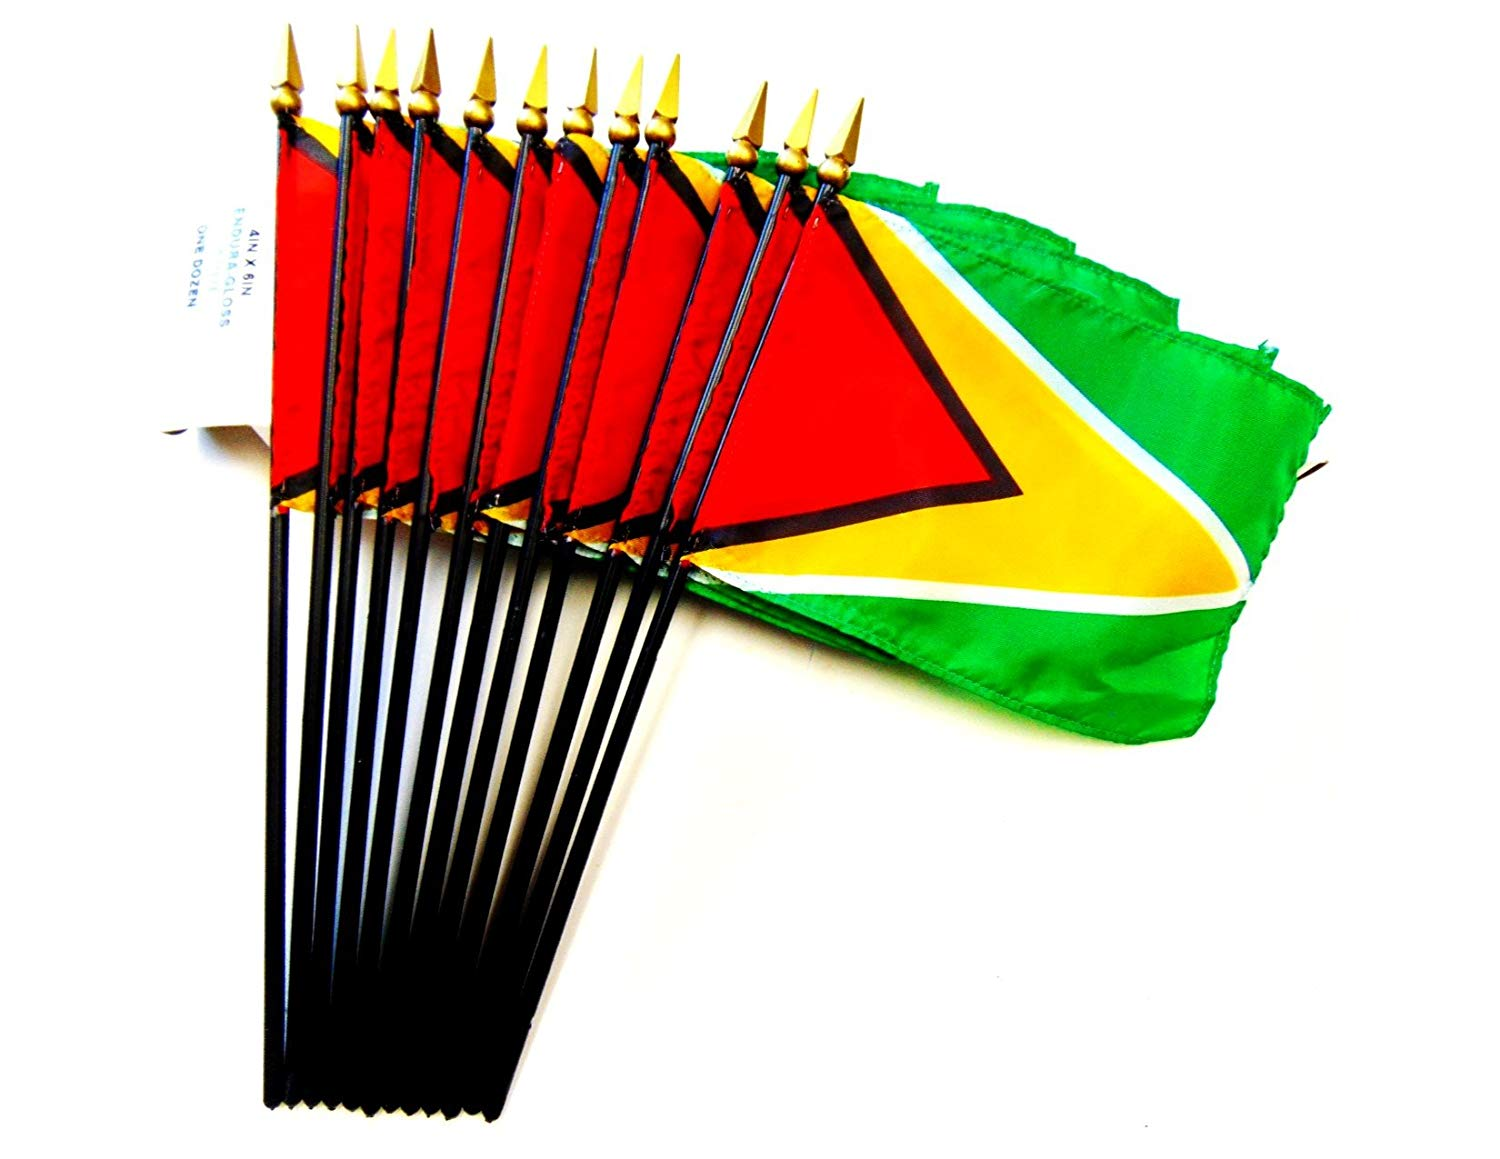 """MADE IN USA!! Box of 12 Guyana 4""""x6"""" Miniature Desk & Table Flags; 12 American Made Small Mini Guyanese Flags in a Custom Made Cardboard Box Specifically Made for These Flags"""